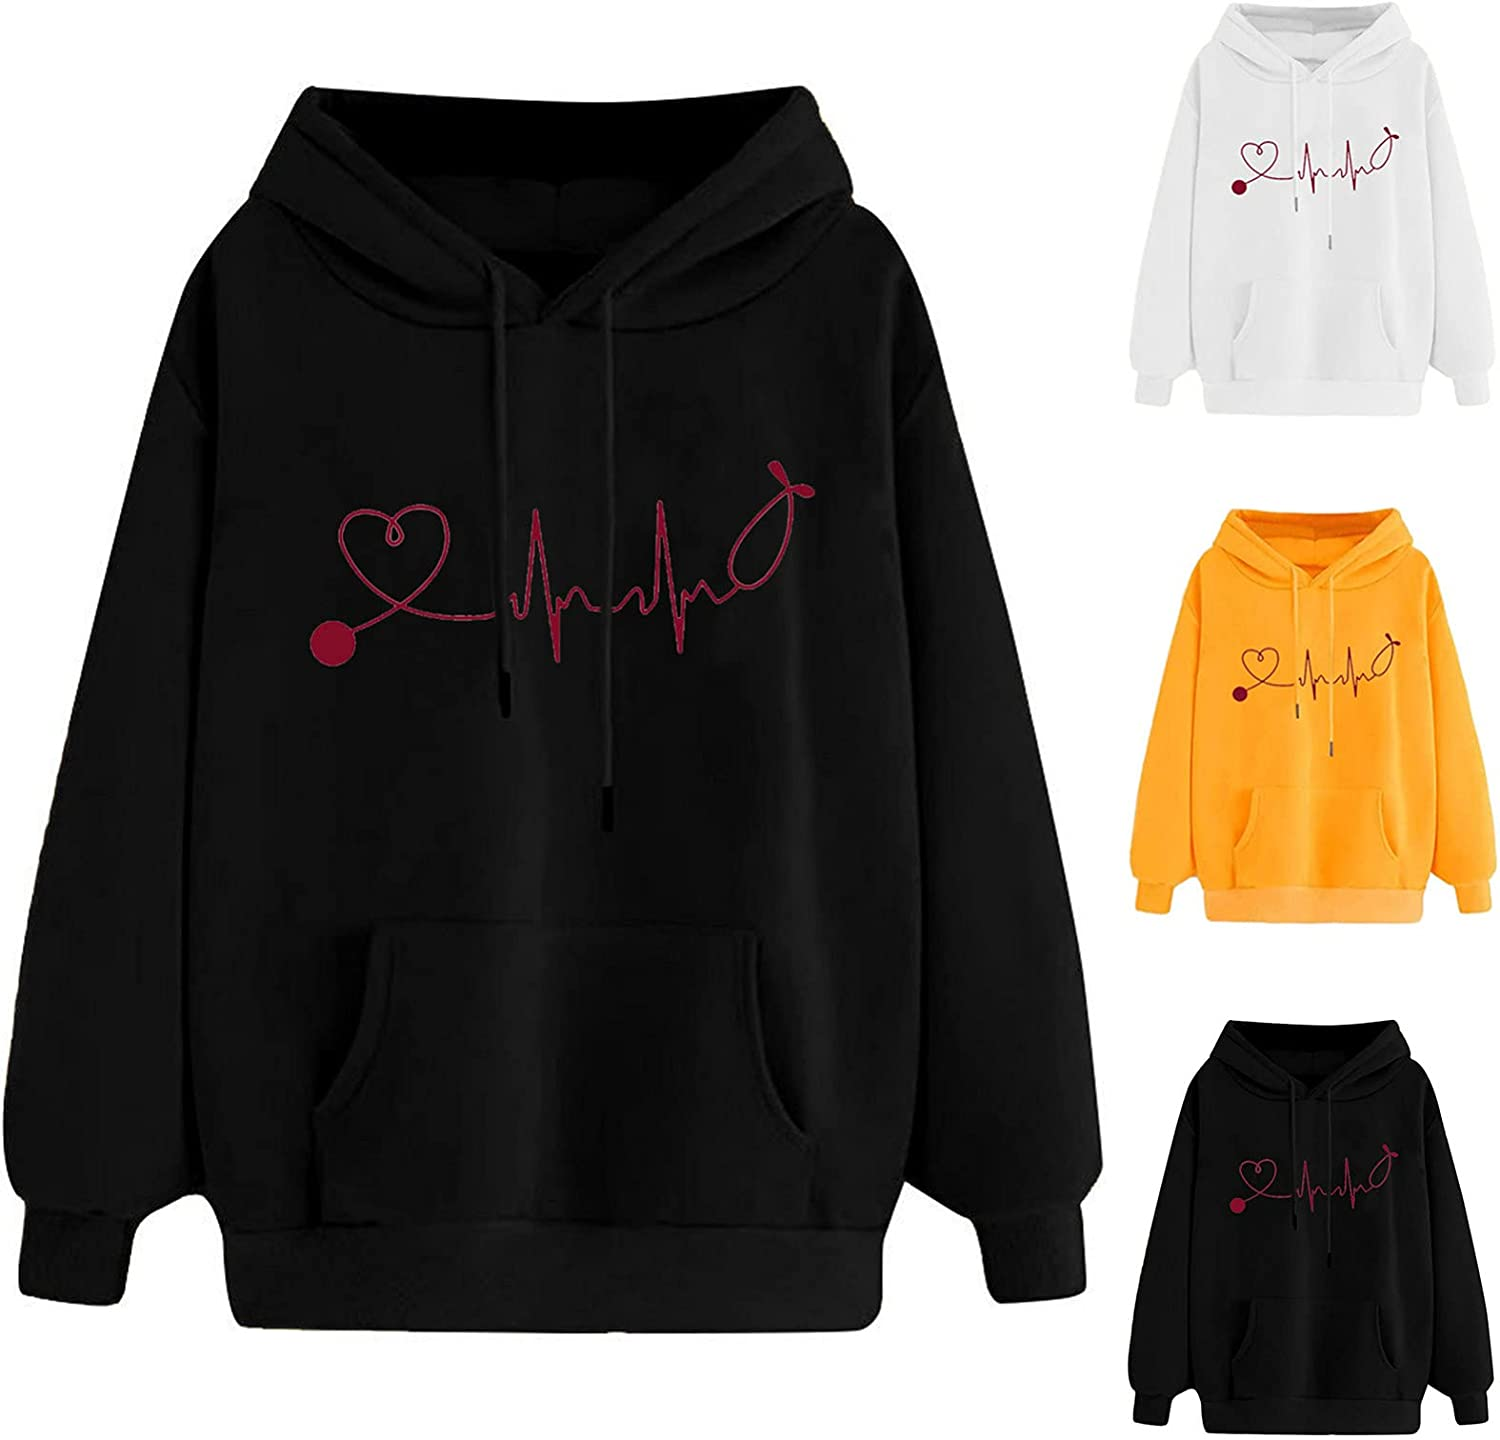 Women's Cute Graphic Hoodies Long Sleeve Sweatshirts Solid Color Casual Tops Plus Size Loose Pullover